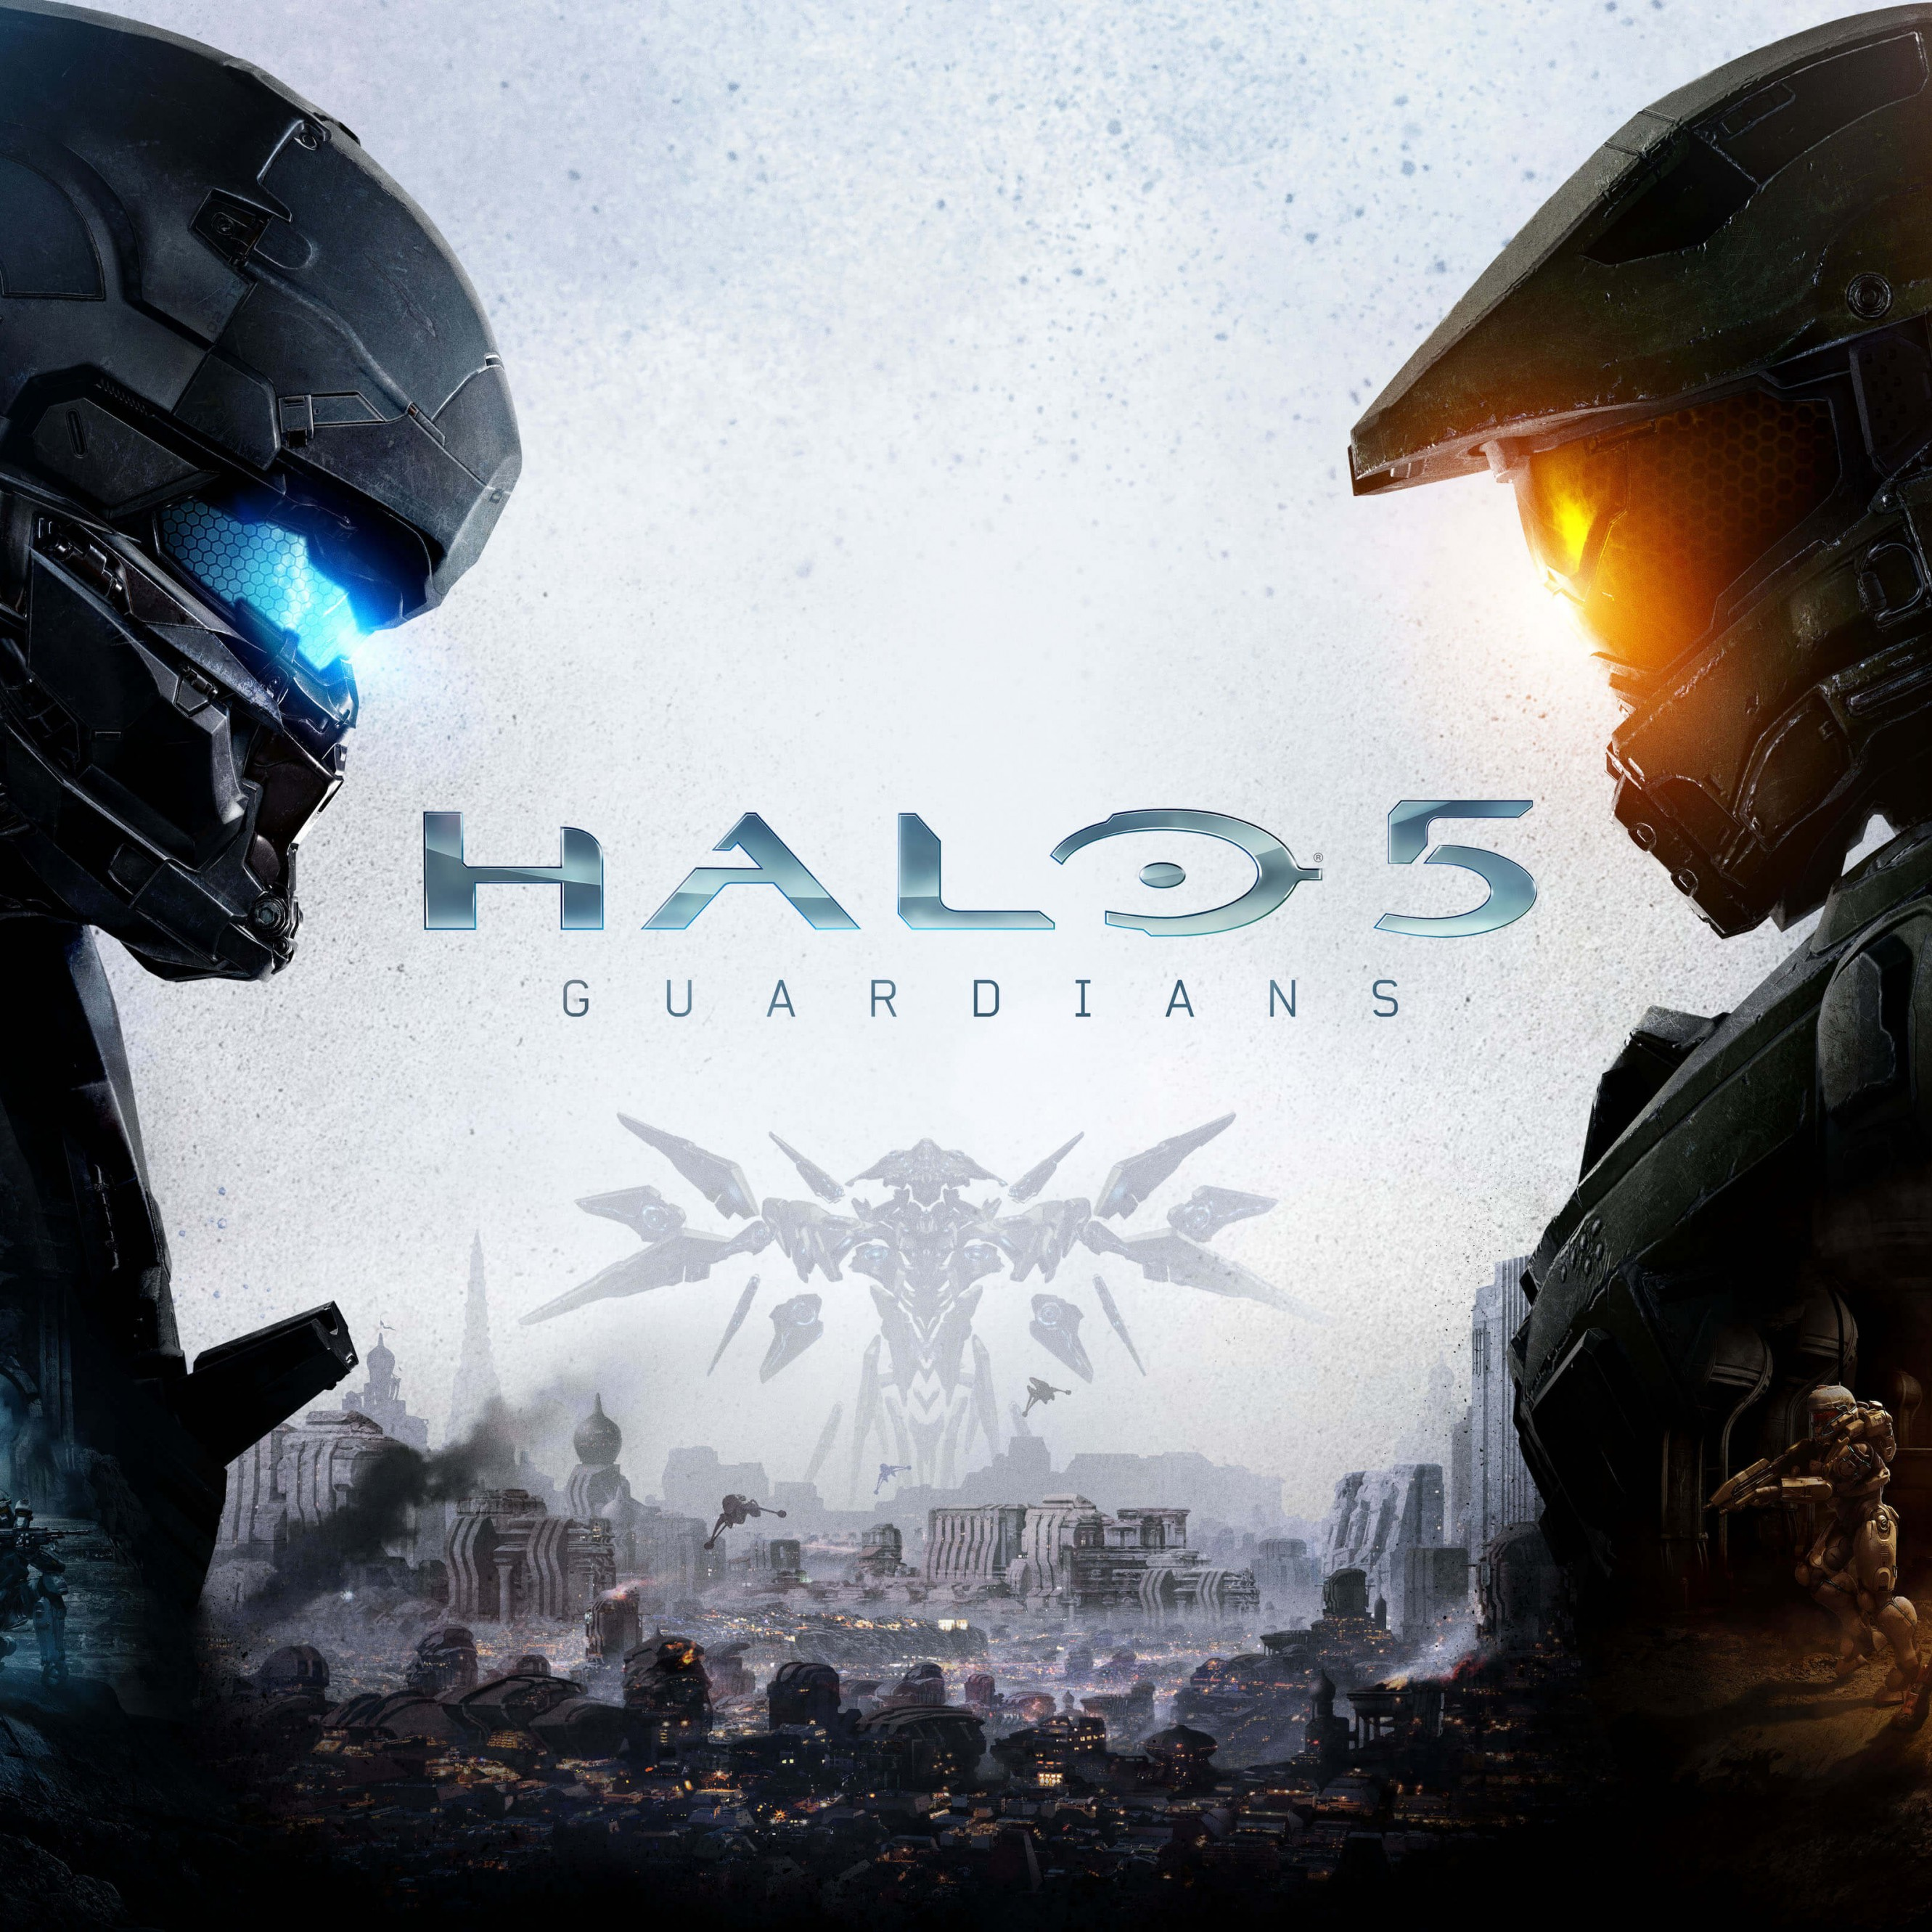 Free Download Halo 5 Guardians Hd Wallpaper For Iphone 6 Plus